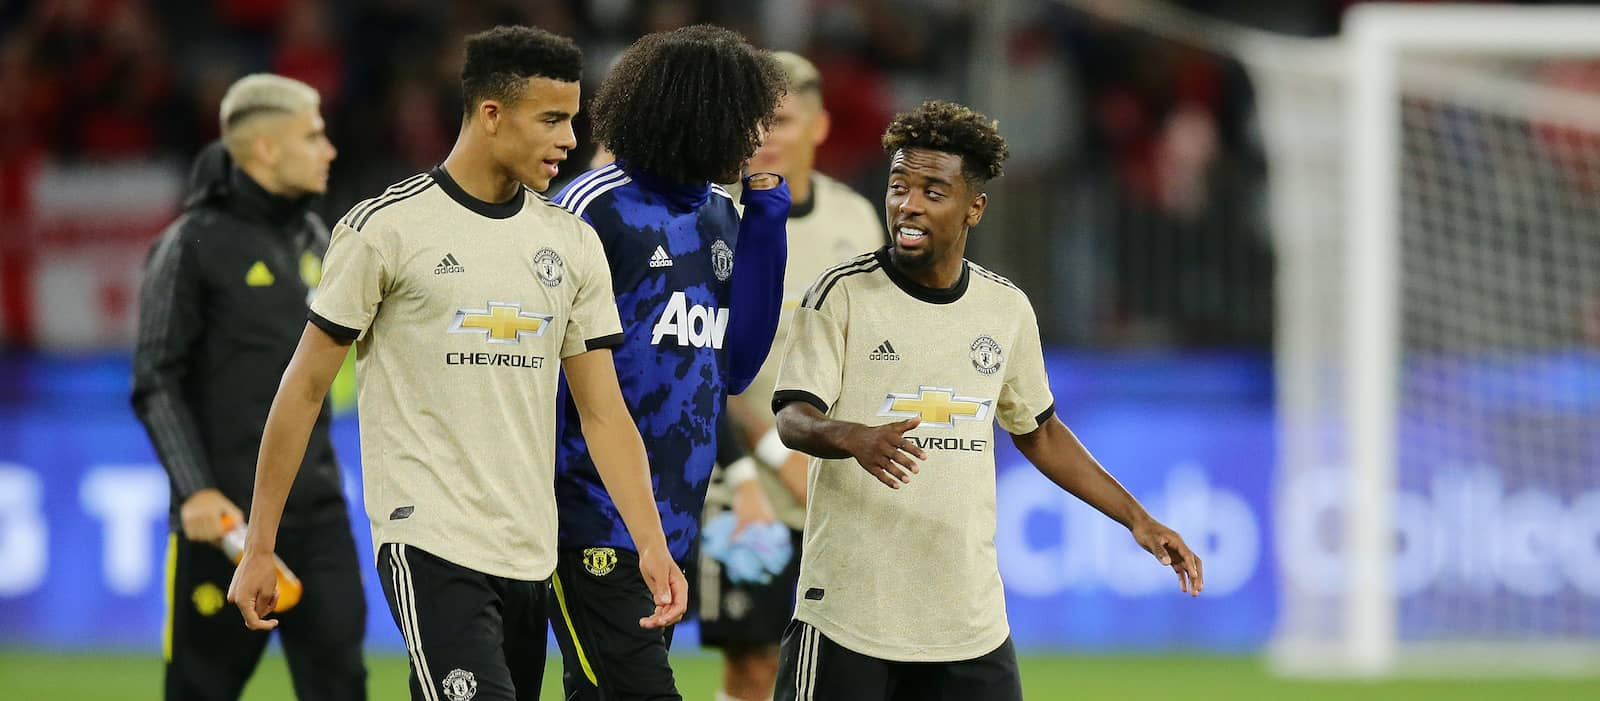 Ole Gunnar Solskjaer calls on Tahith Chong and Angel Gomes to continue developing